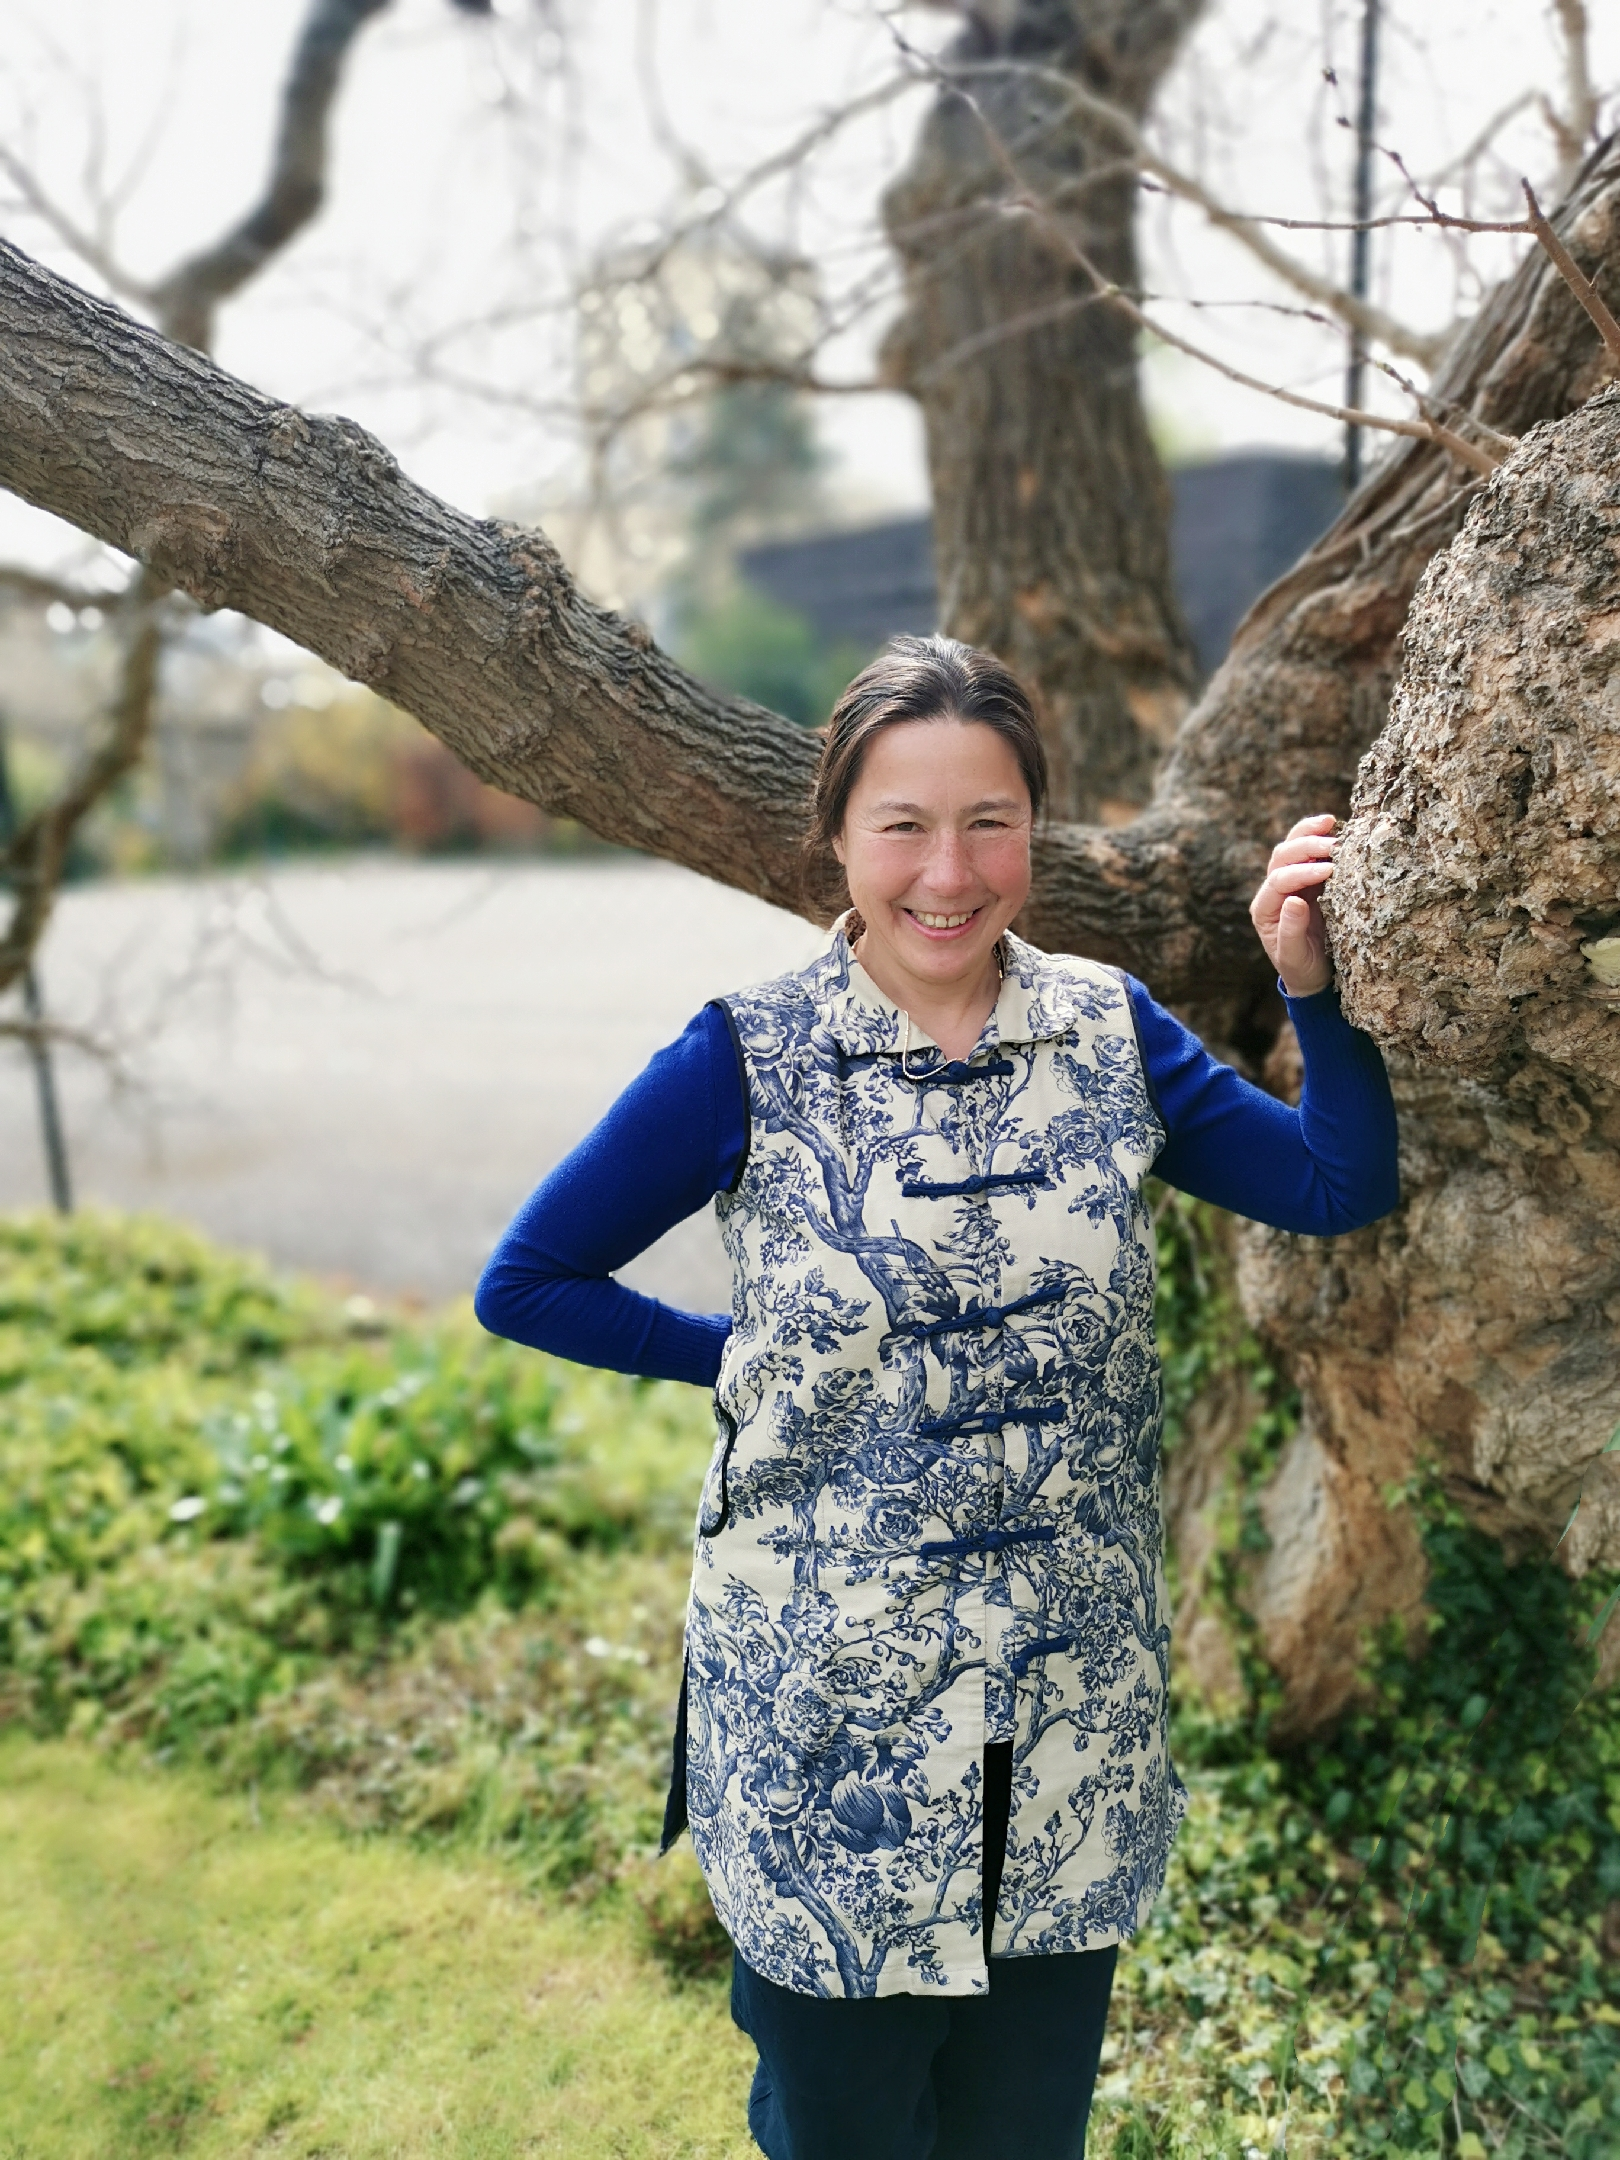 Professor Elisabeth Hsu smiling as she leans against a mulberry tree